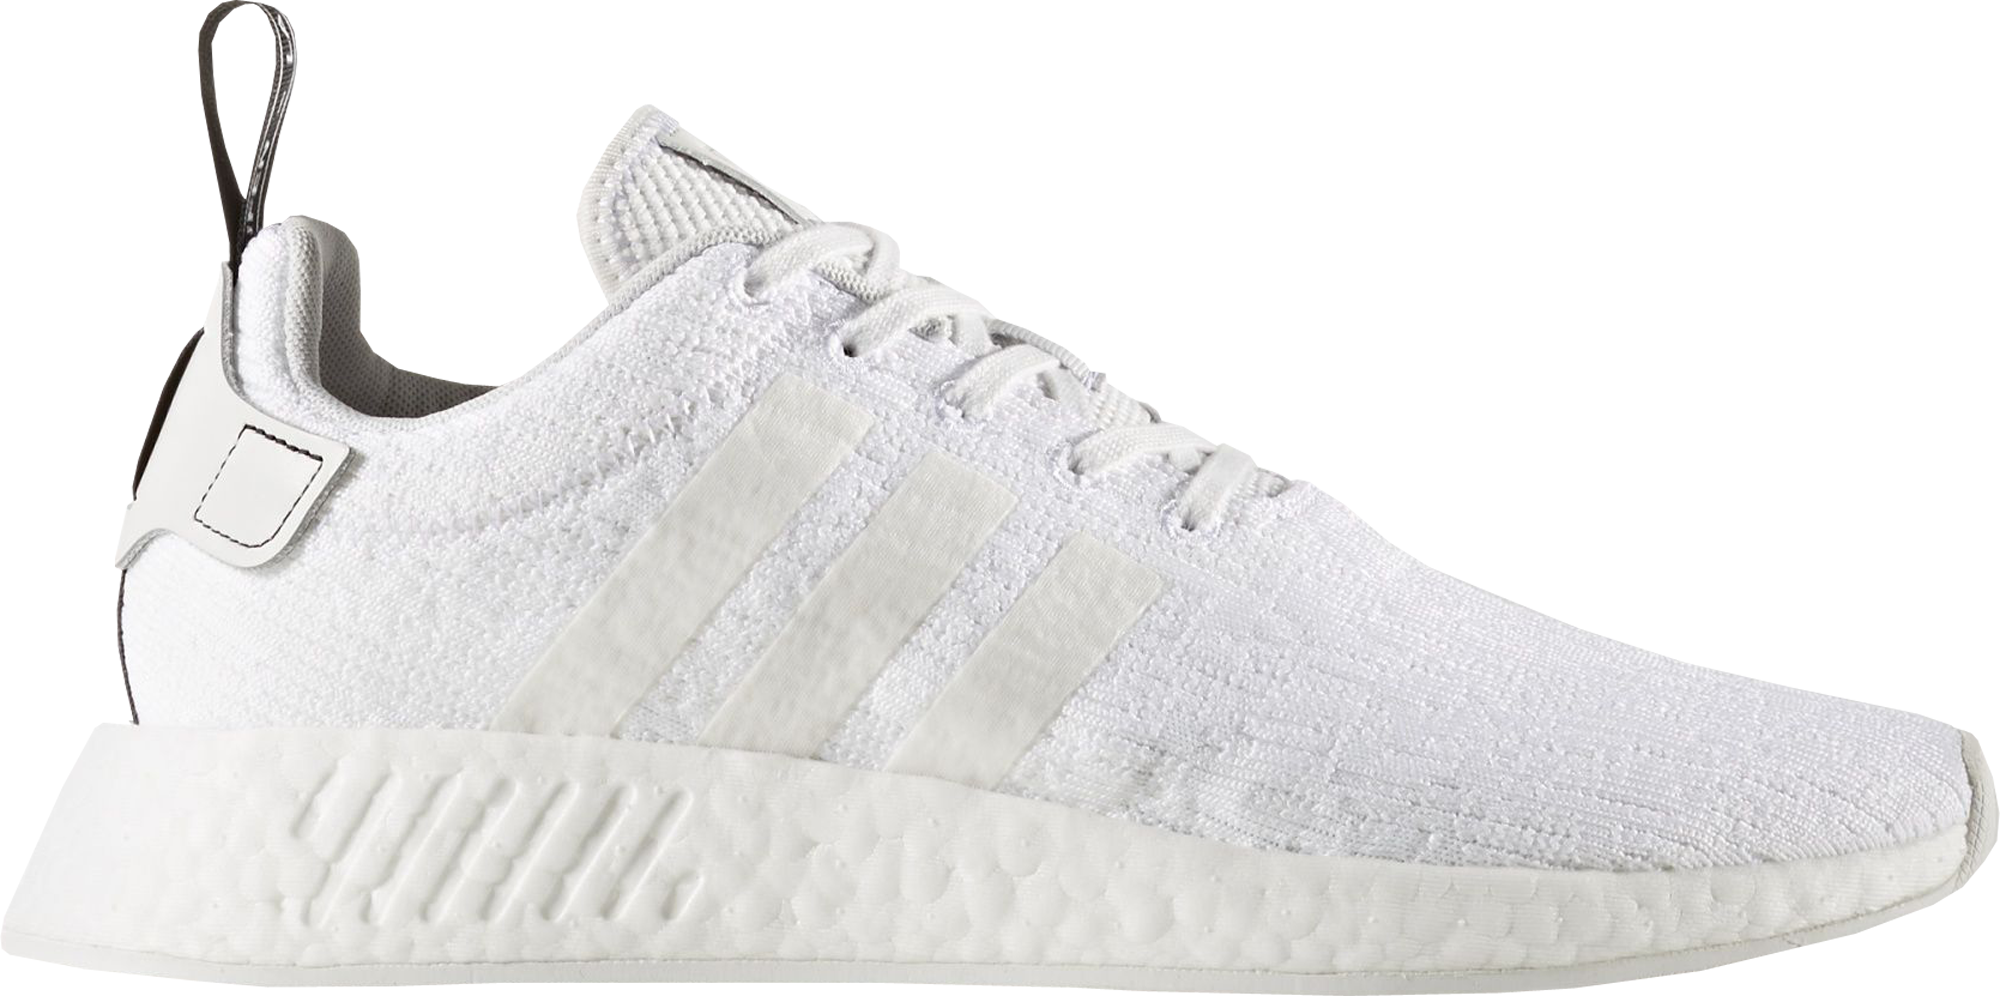 adidas NMD R2 Crystal White - BY9914